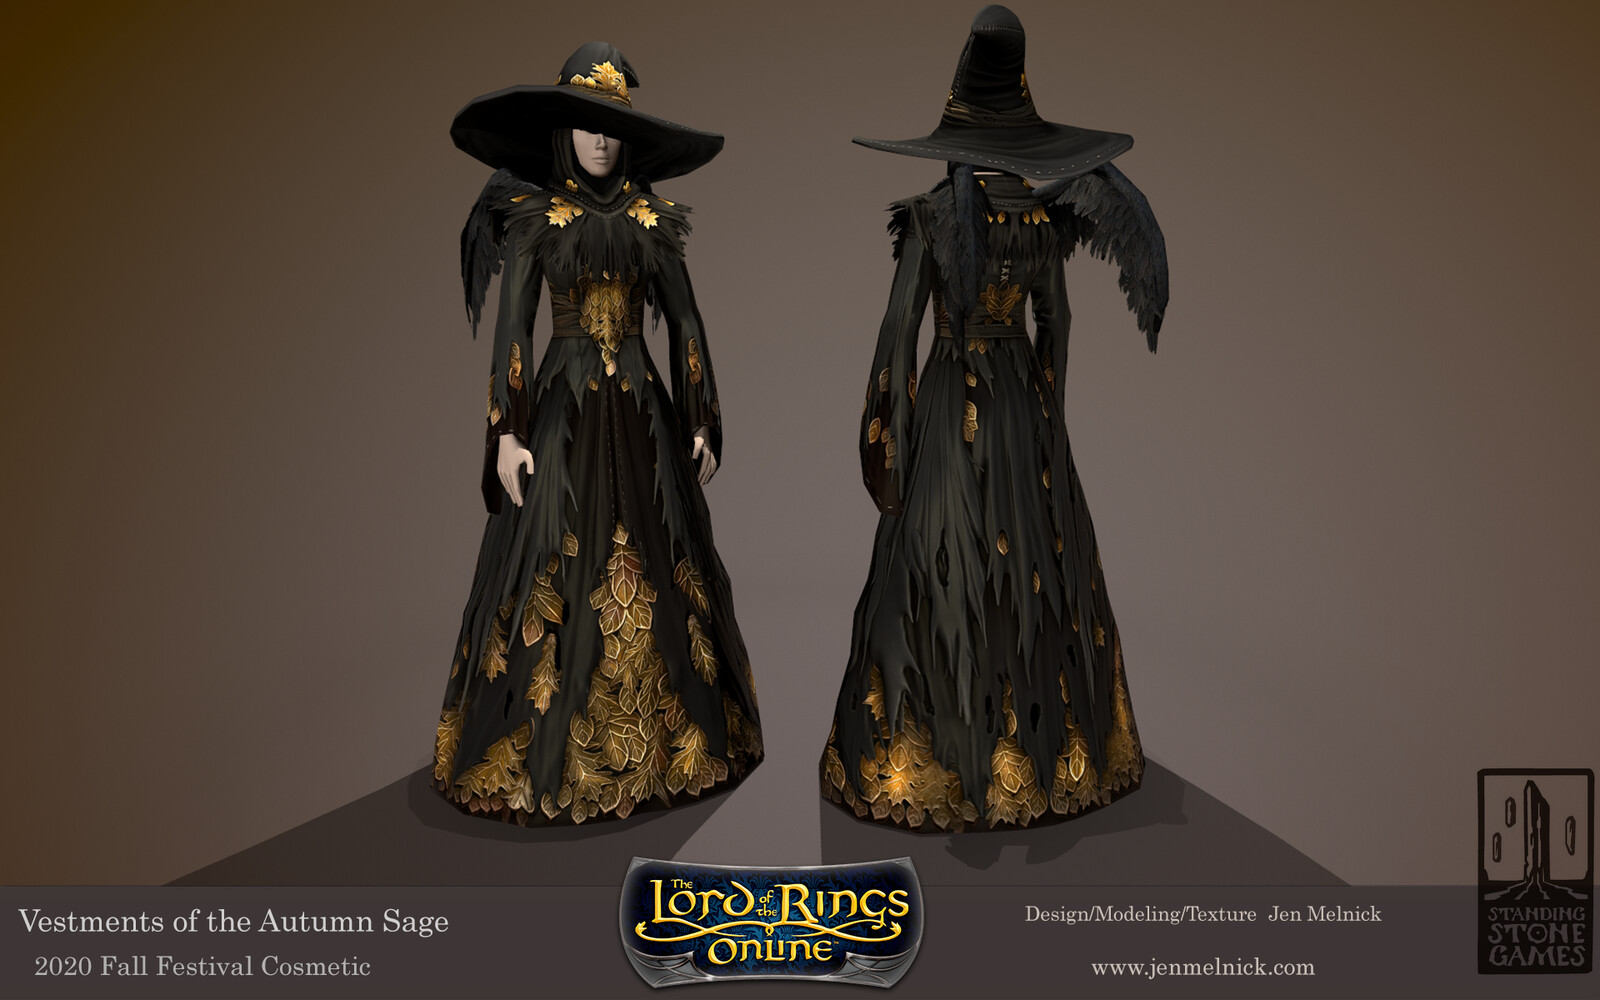 Lord of the Rings Online Vestments of the Autumn Sage Fall Festival 2020 Dress, Shoulders, and Hat are all dyeable Back wings are alternate cosmetic for the set to replace the cloak